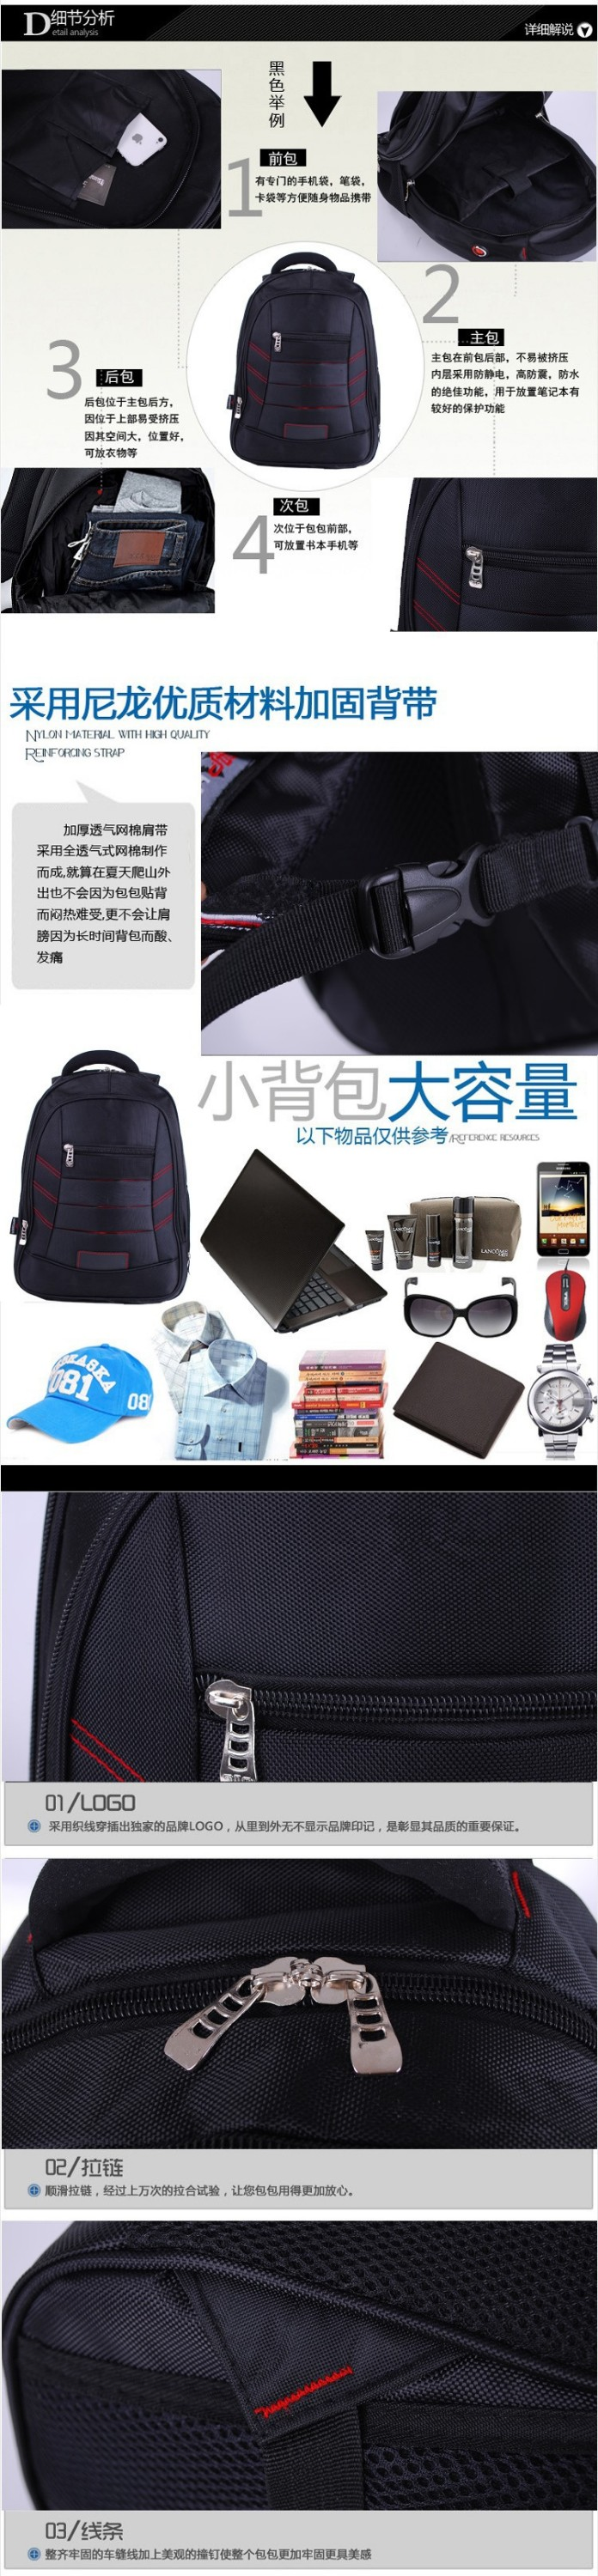 Newest Fashional China Factory High Quality Cheap Price Waterproof Nylon Laptop Backpack Bag